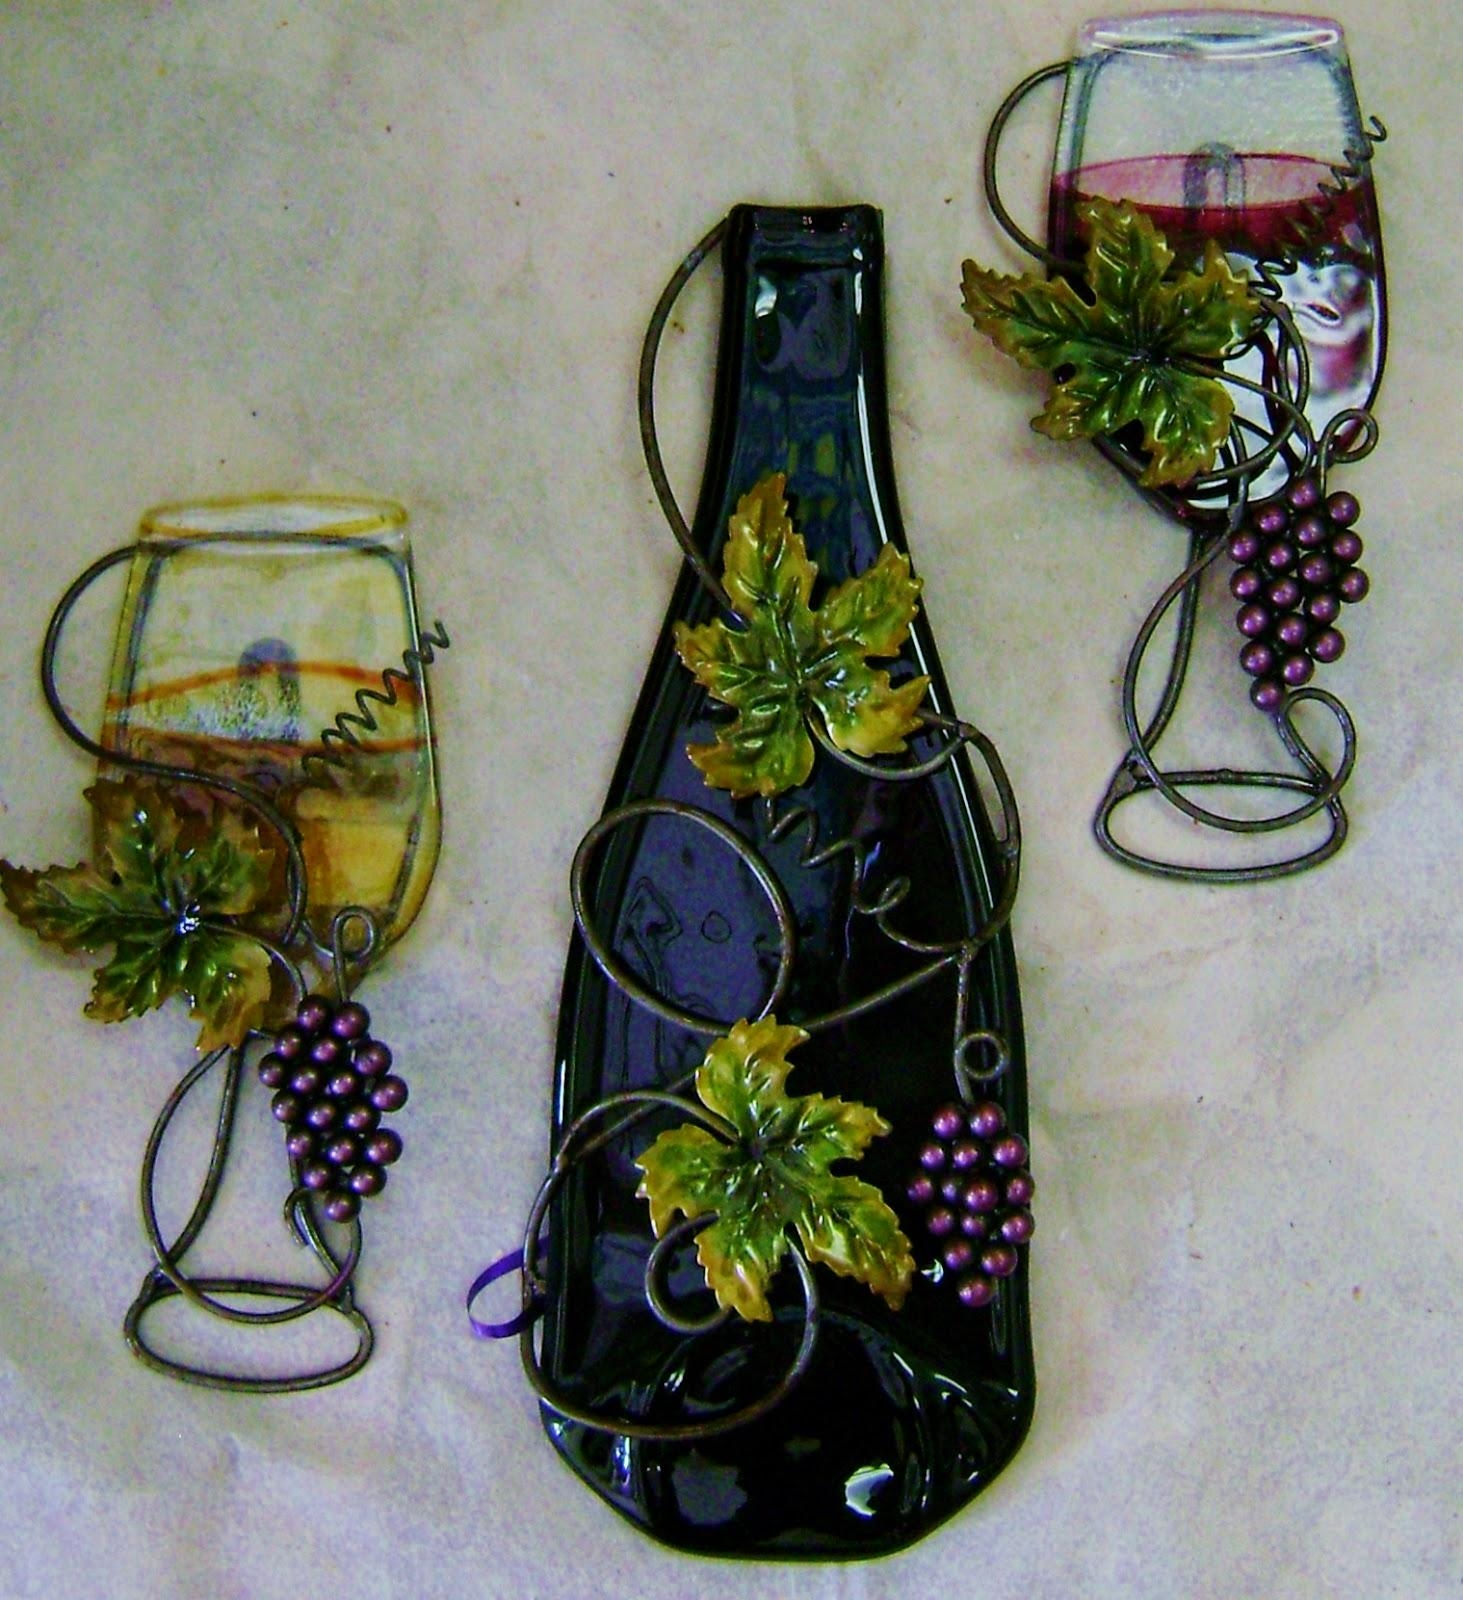 Welcome To Inspire On The Danforth! A Great Little Store For Great Throughout Wine Metal Wall Art (Image 17 of 20)